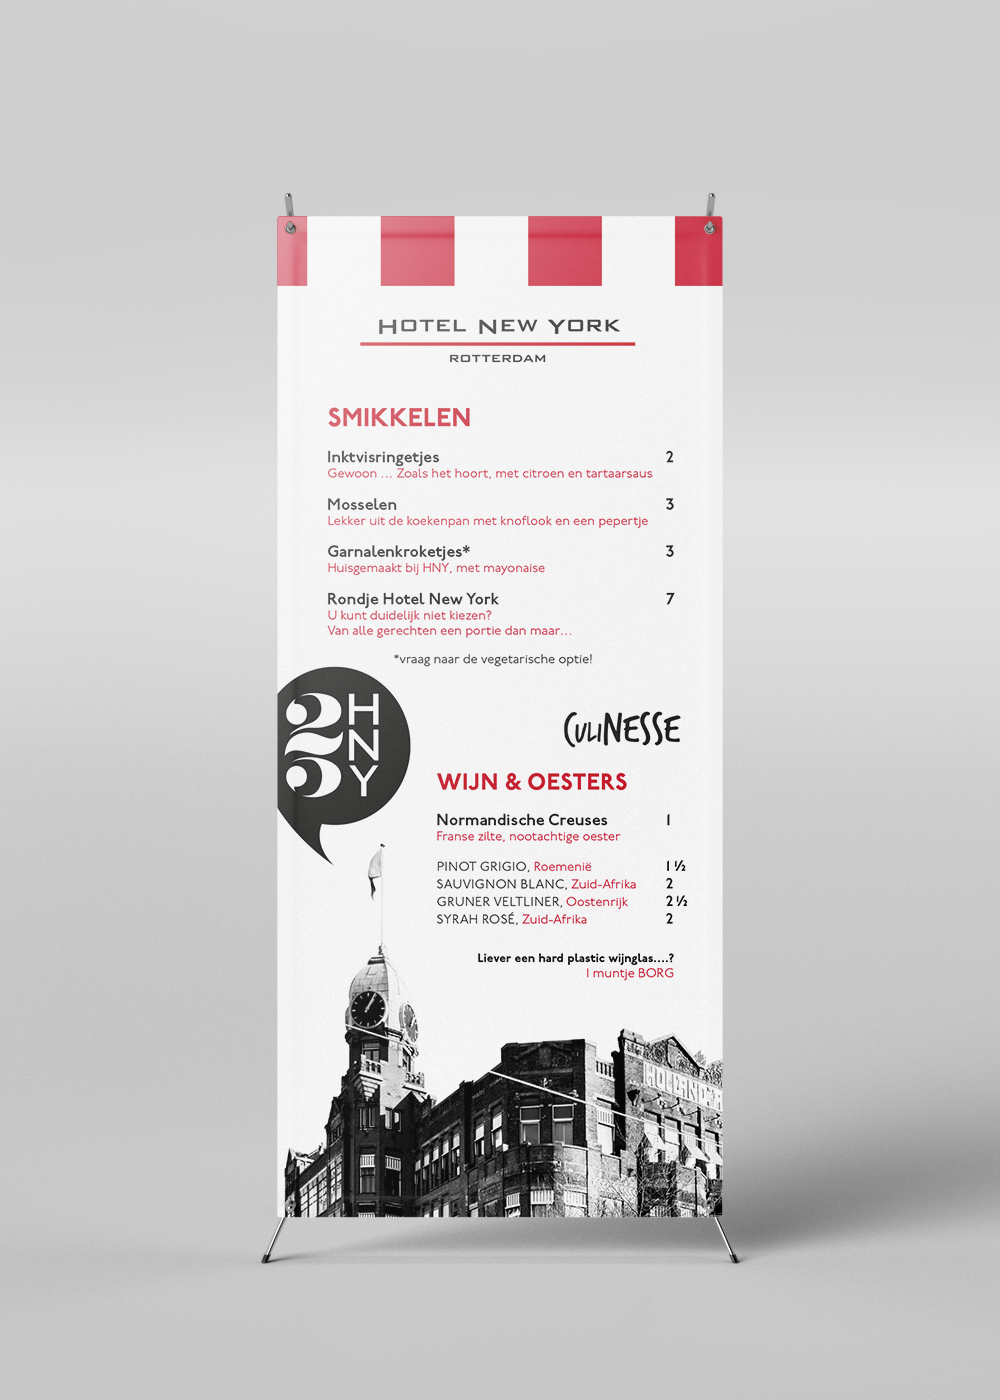 Rollup banner Culinesse